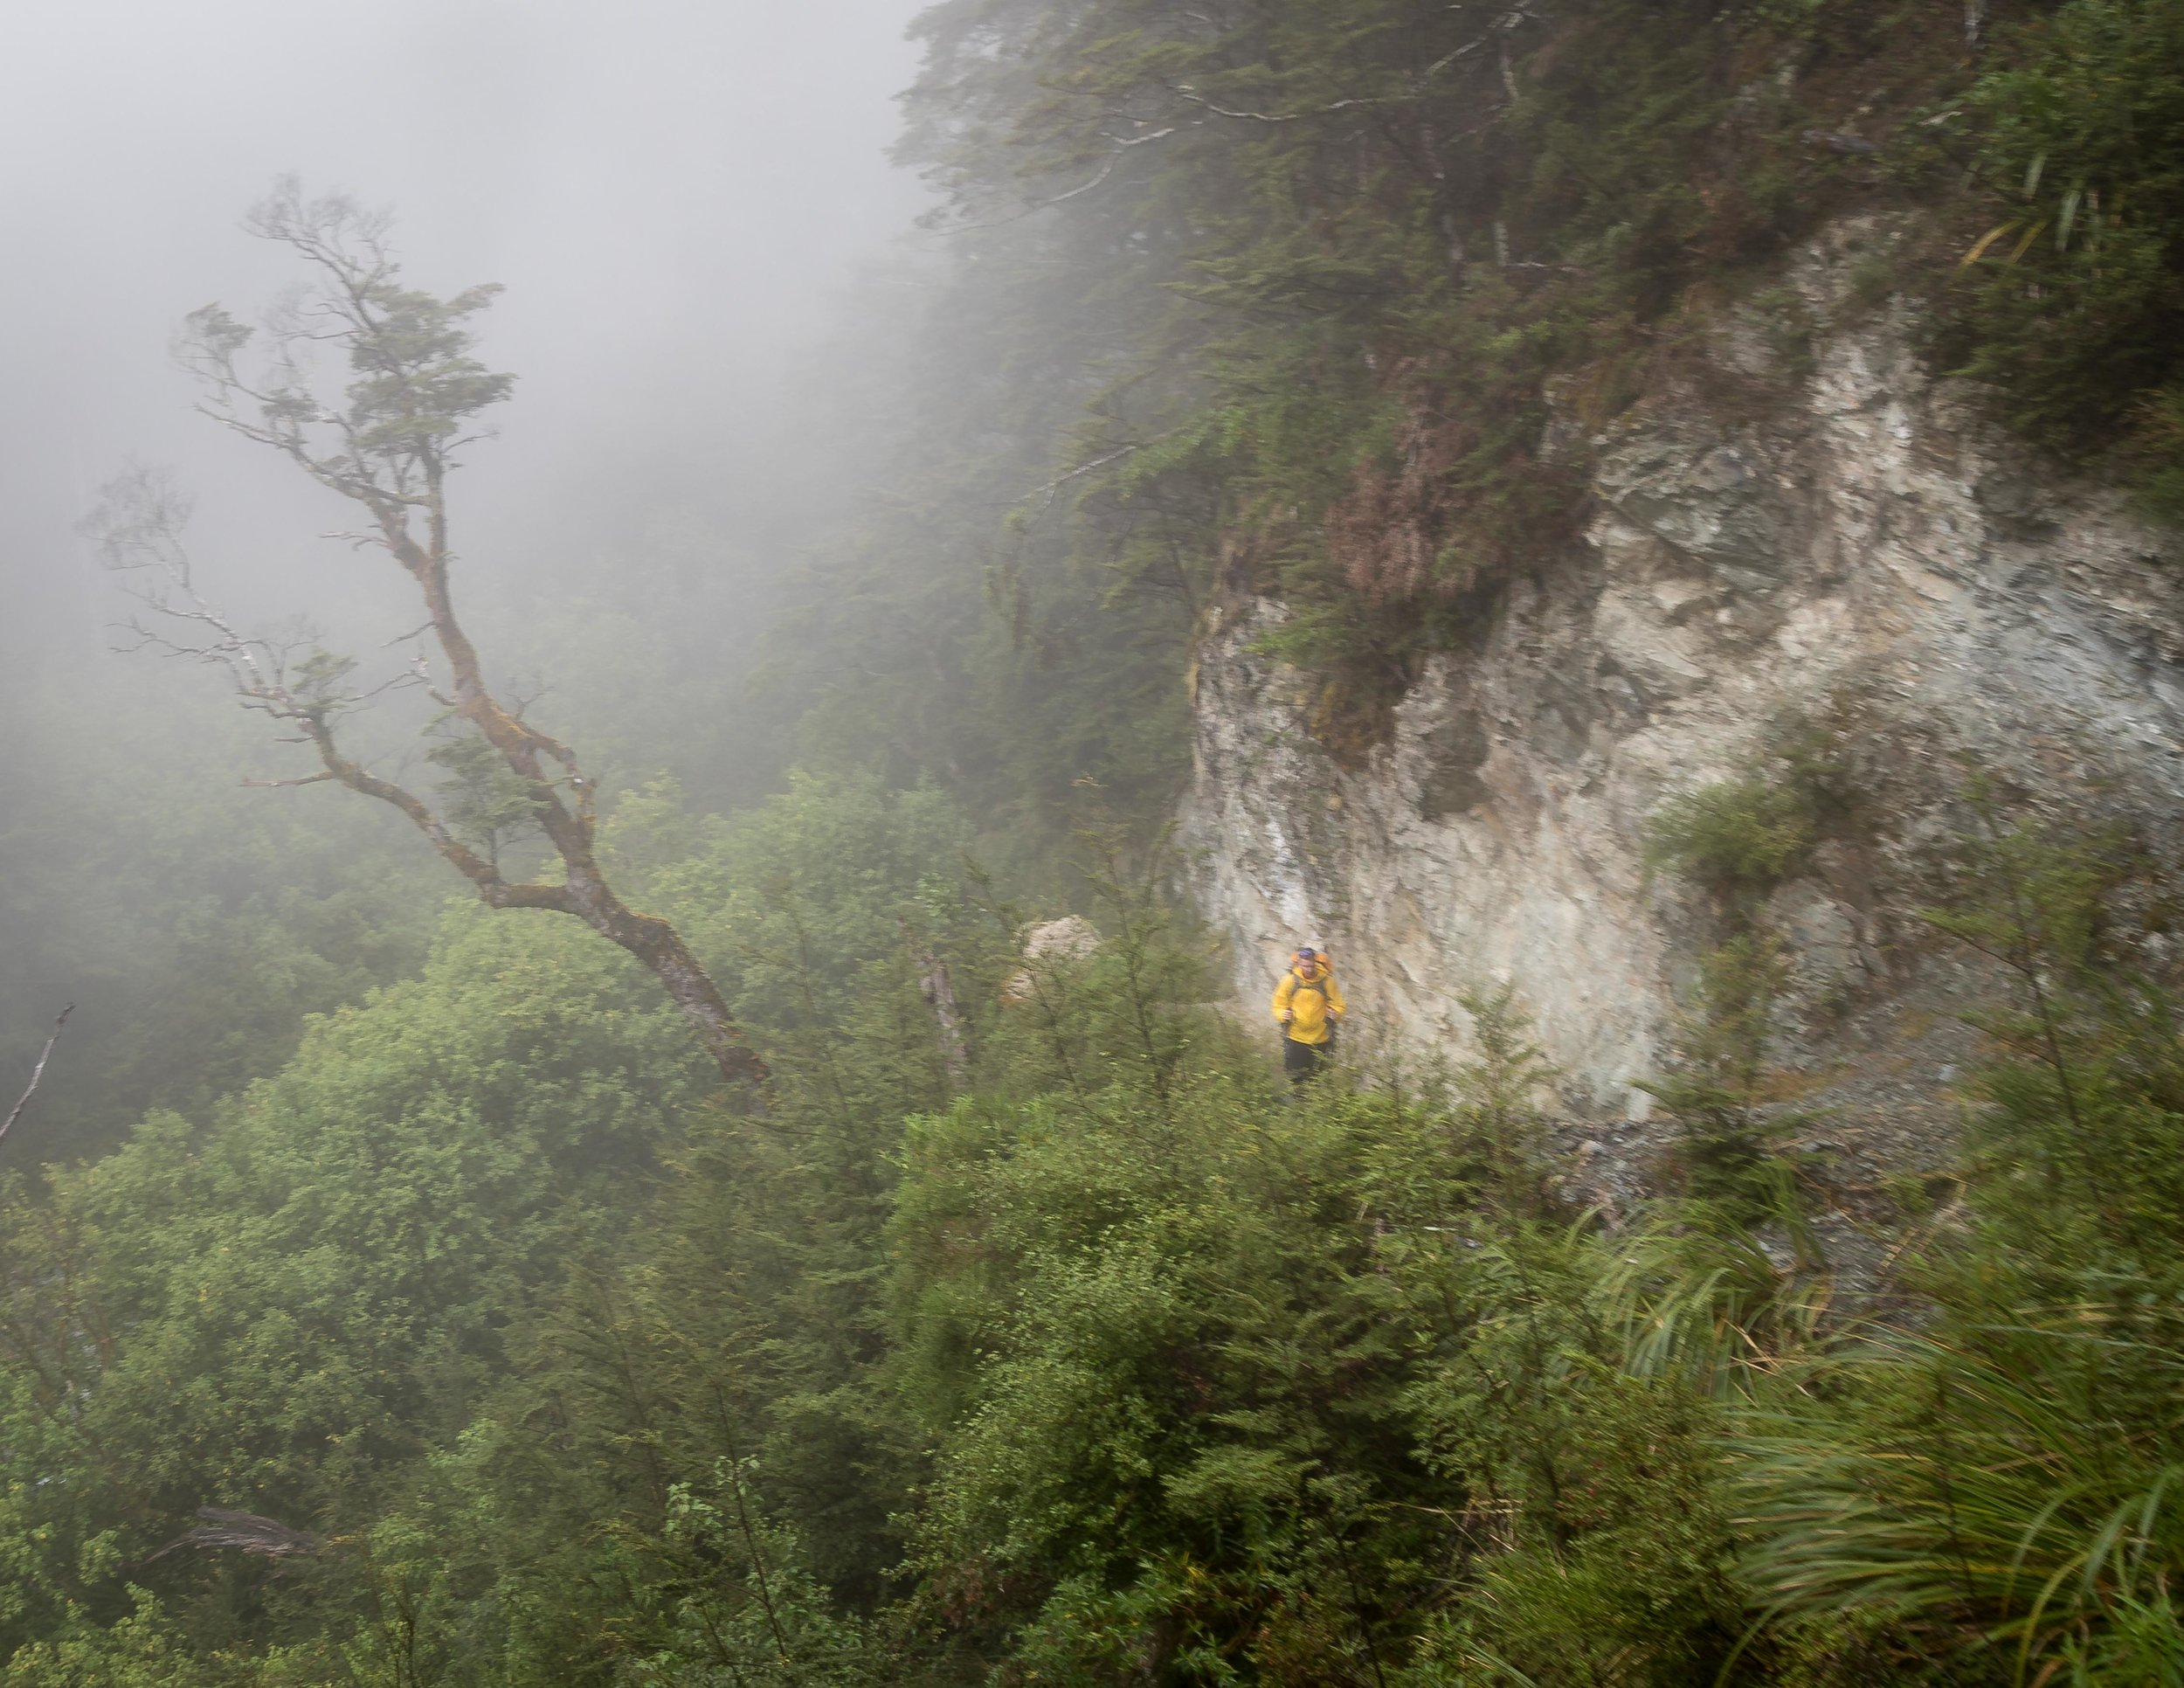 The Routeburn Track: Walking in a cloud